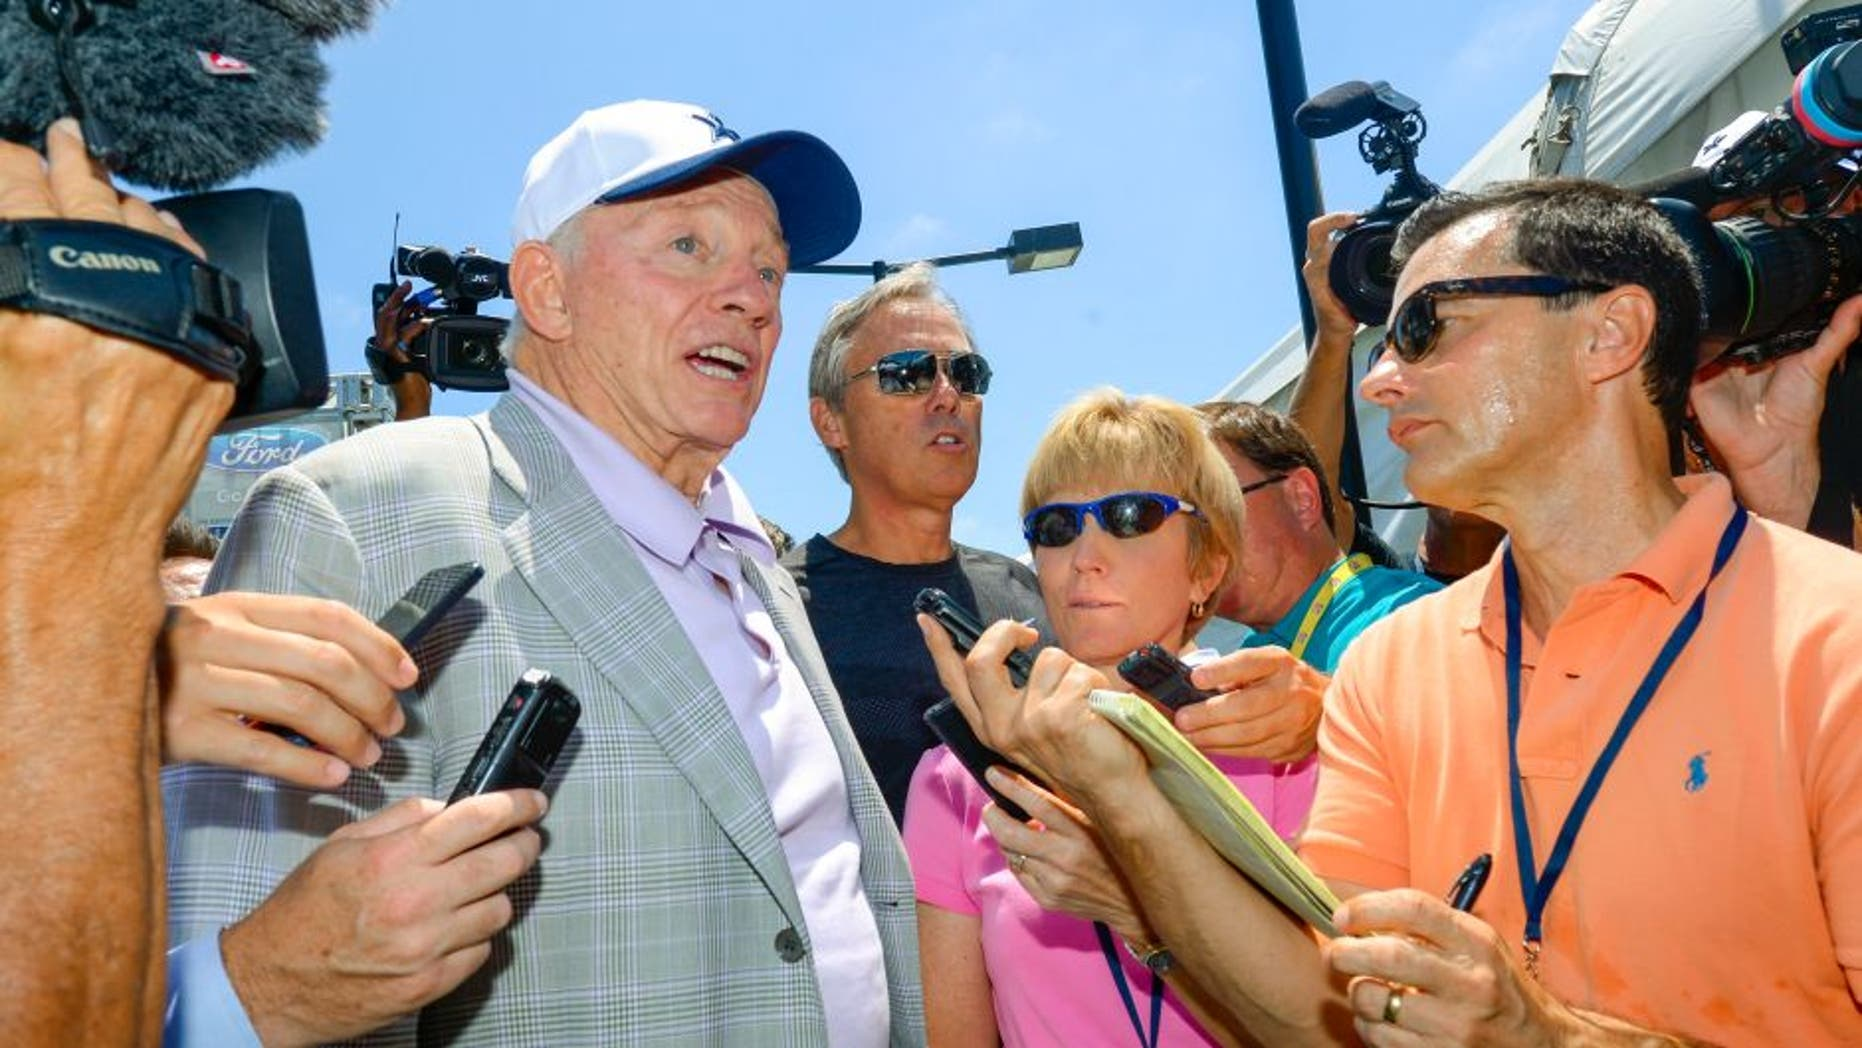 """Dallas Cowboys owner Jerry Jones fields questions from members of the media during the """"state of the team"""" news conference at the start of NFL football training camp, Wednesday, July 29, 2015, in Oxnard, Calif. (AP Photo/Gus Ruelas)"""